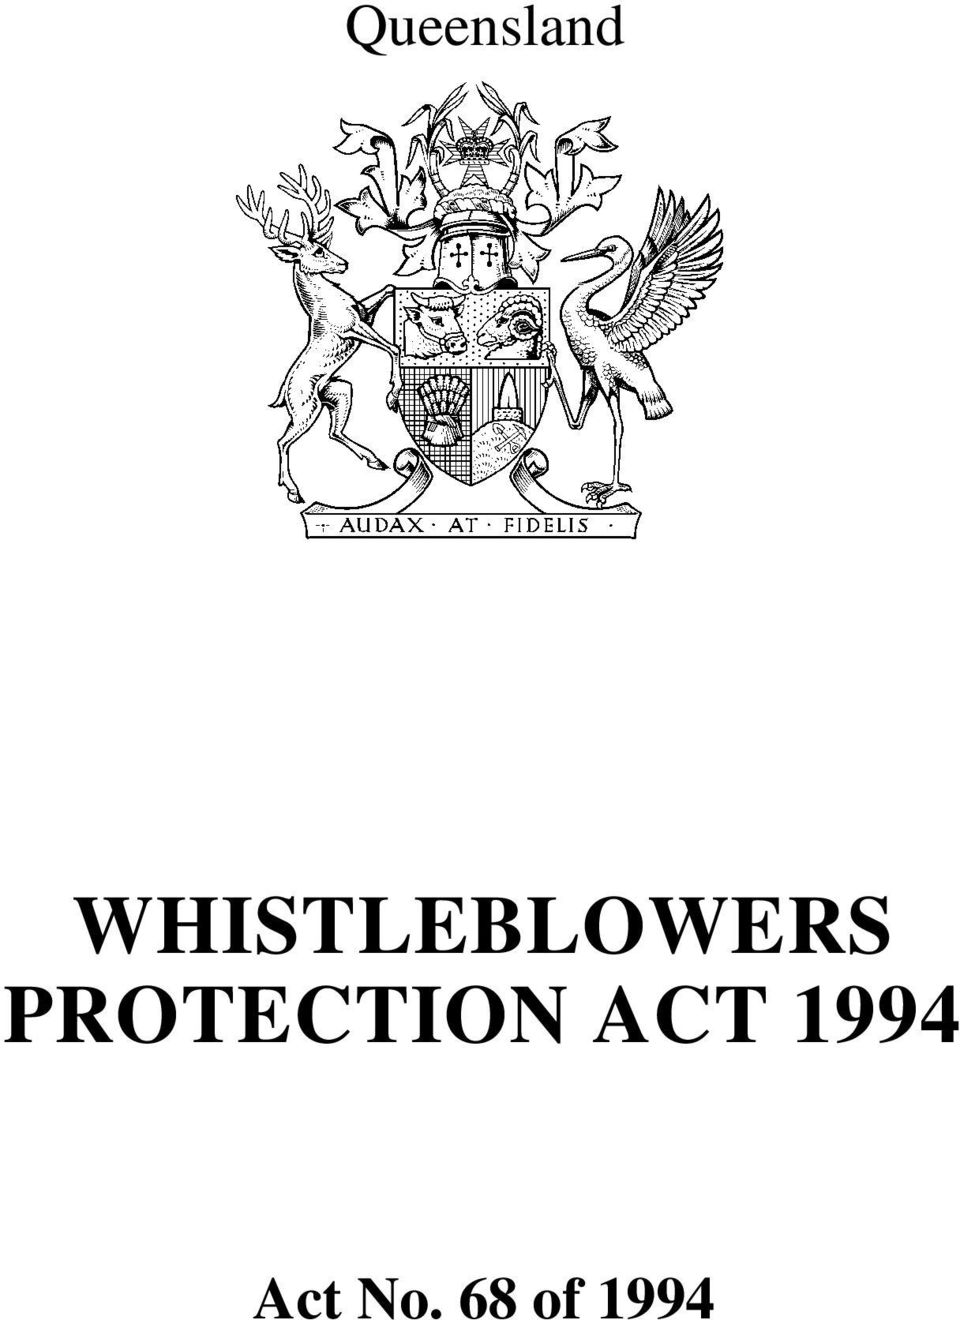 PROTECTION ACT